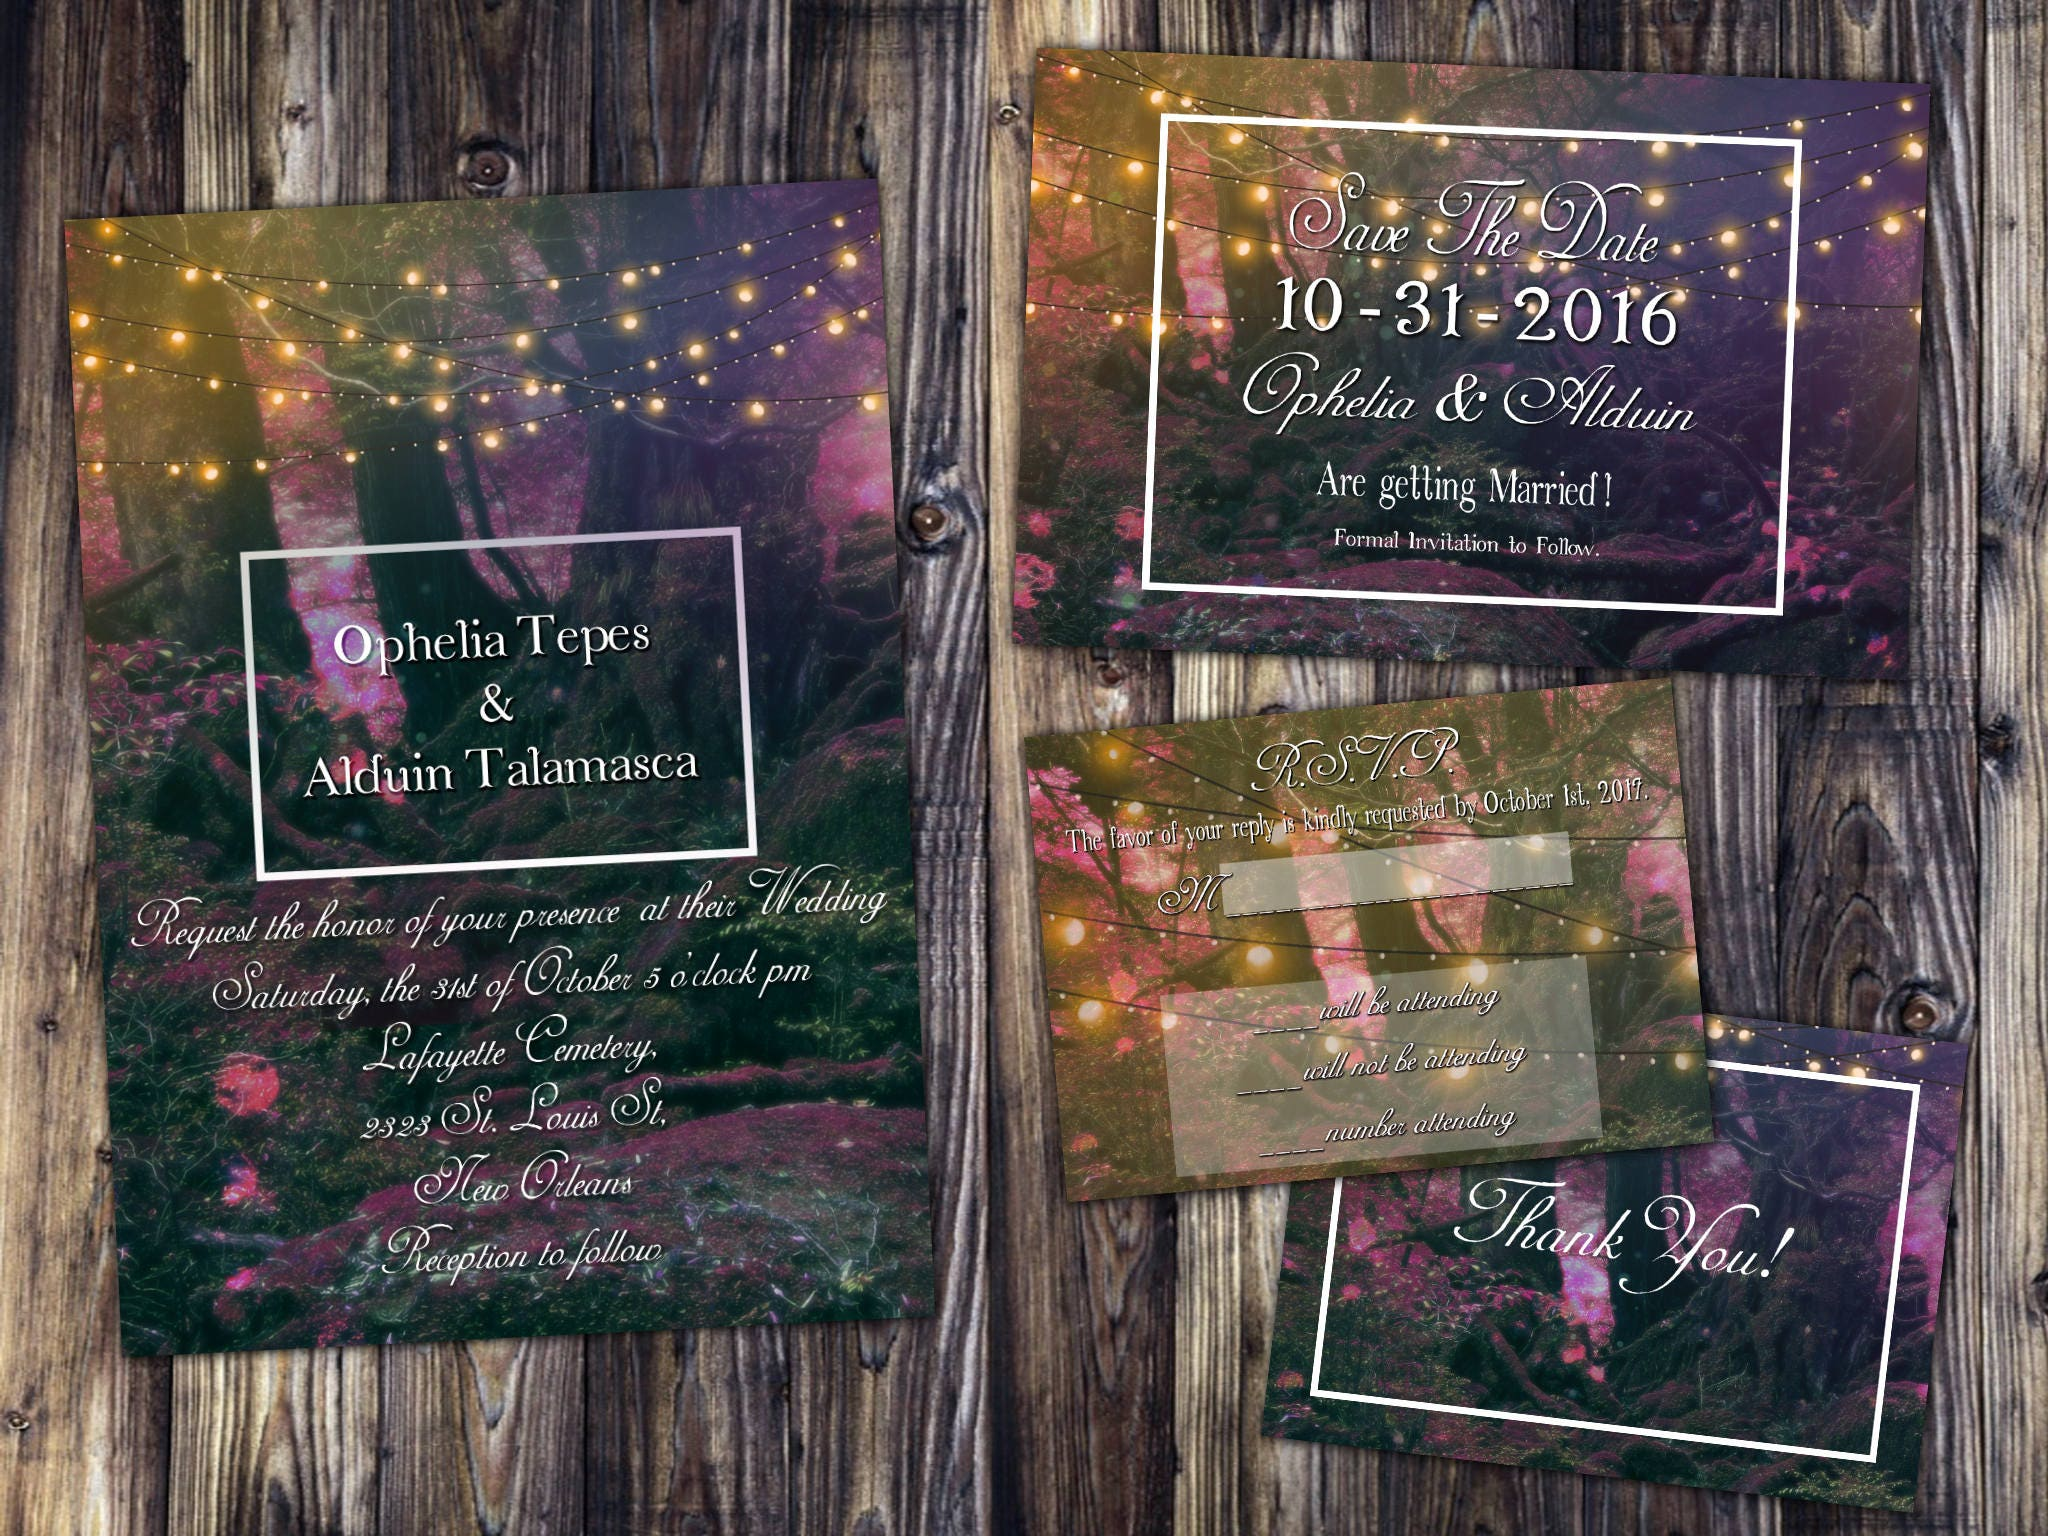 Enchanted Forest Themed Wedding Invitations: Enchanted Fairy Forest Themed Wedding Invitation